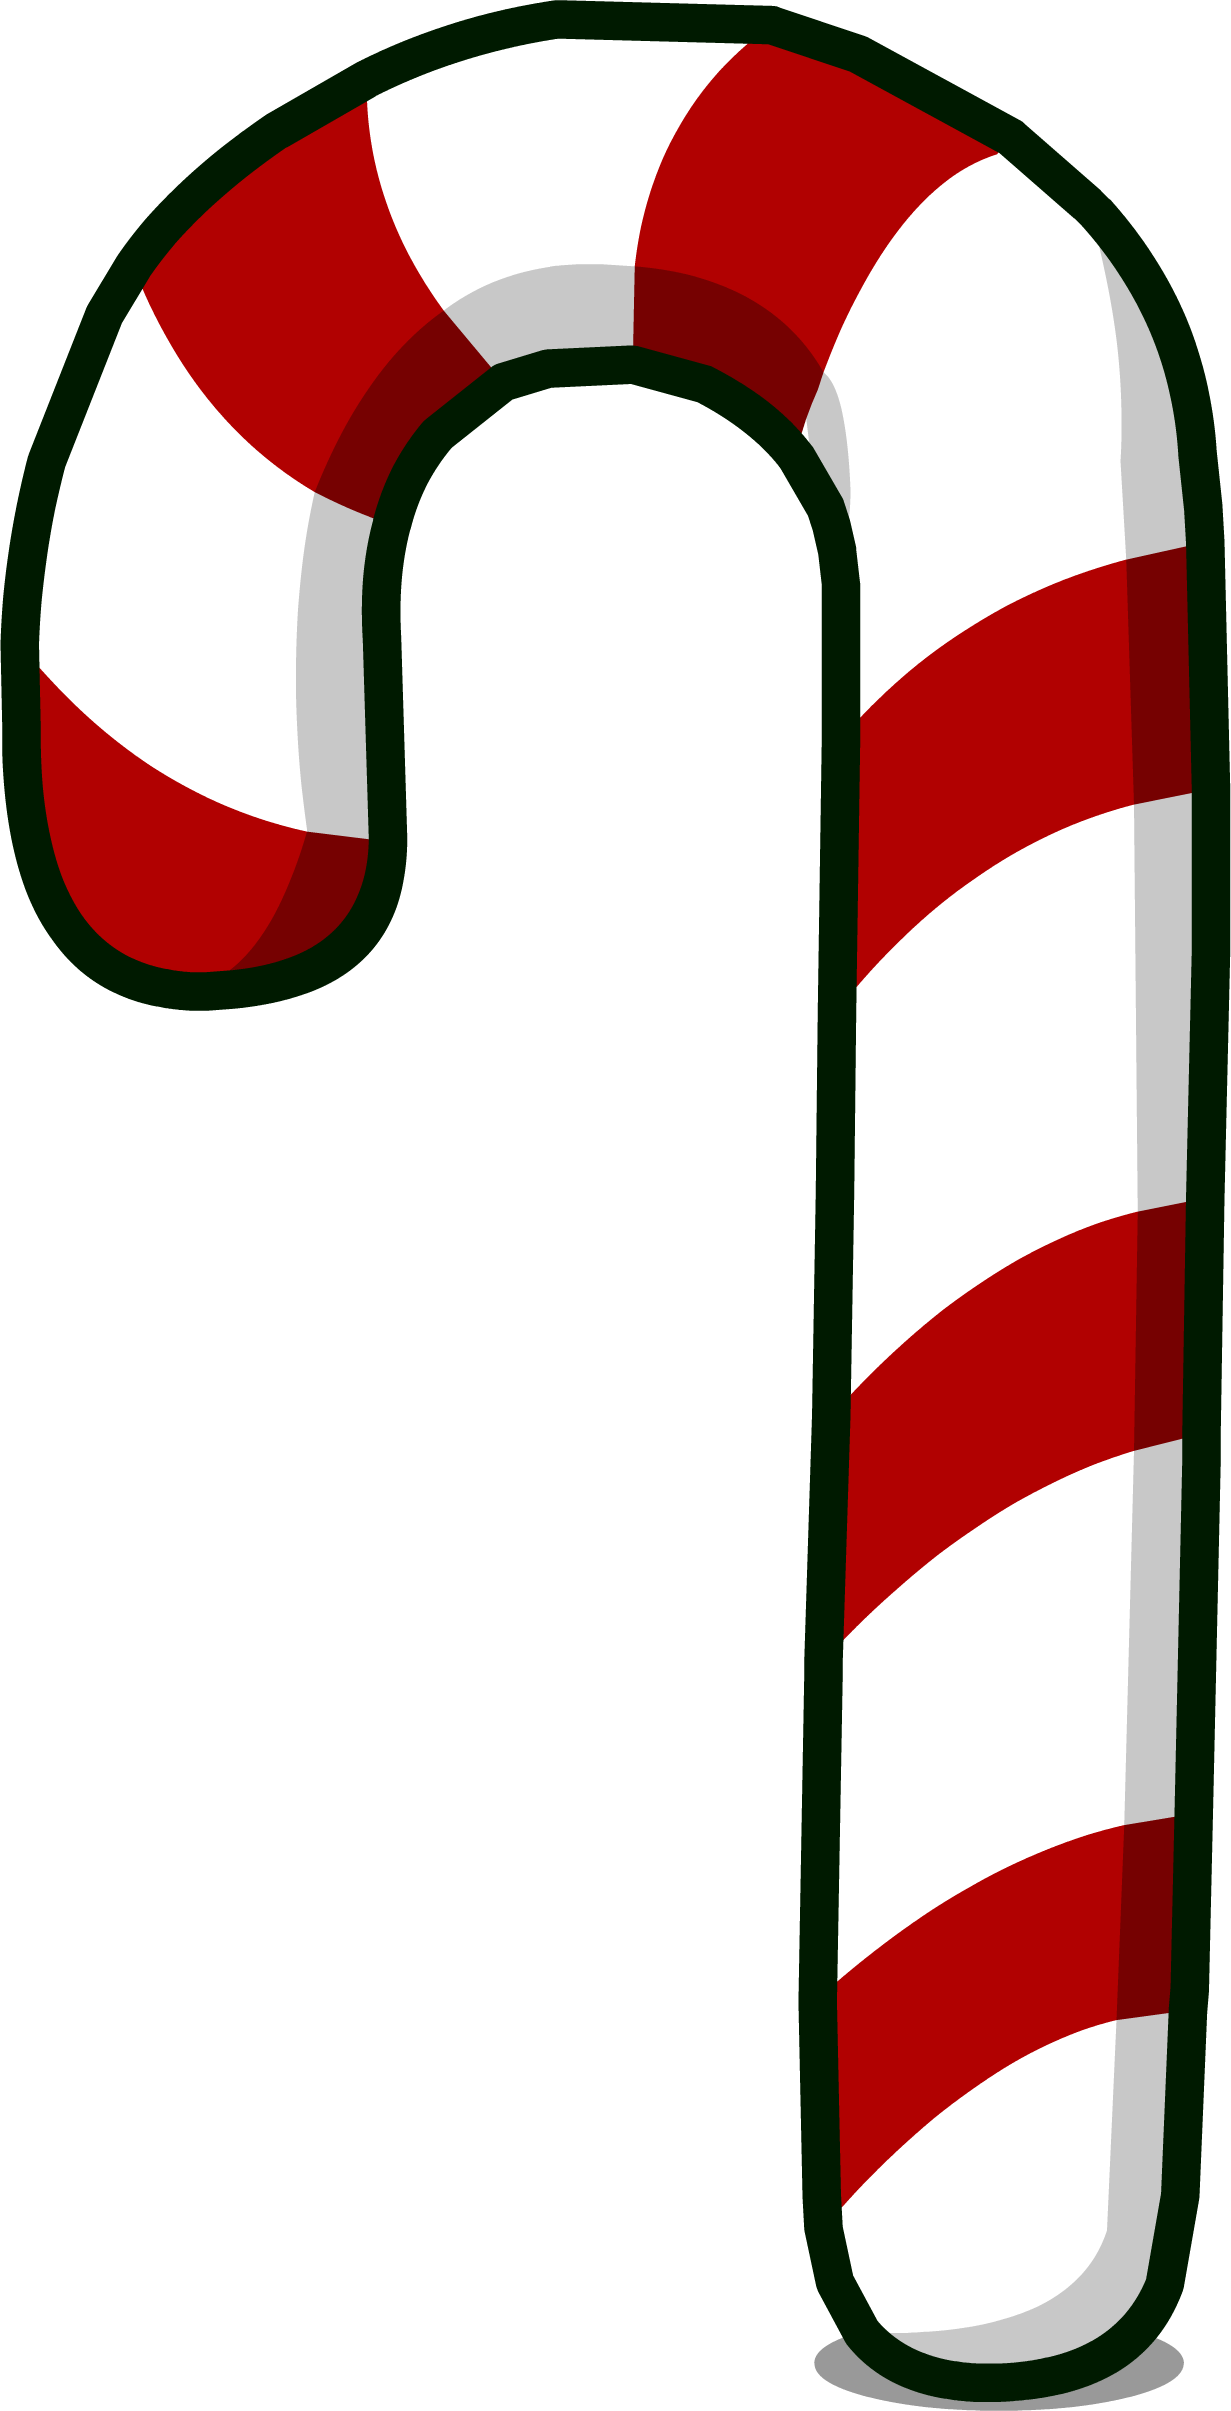 Png candy cane. Image giant sprite club